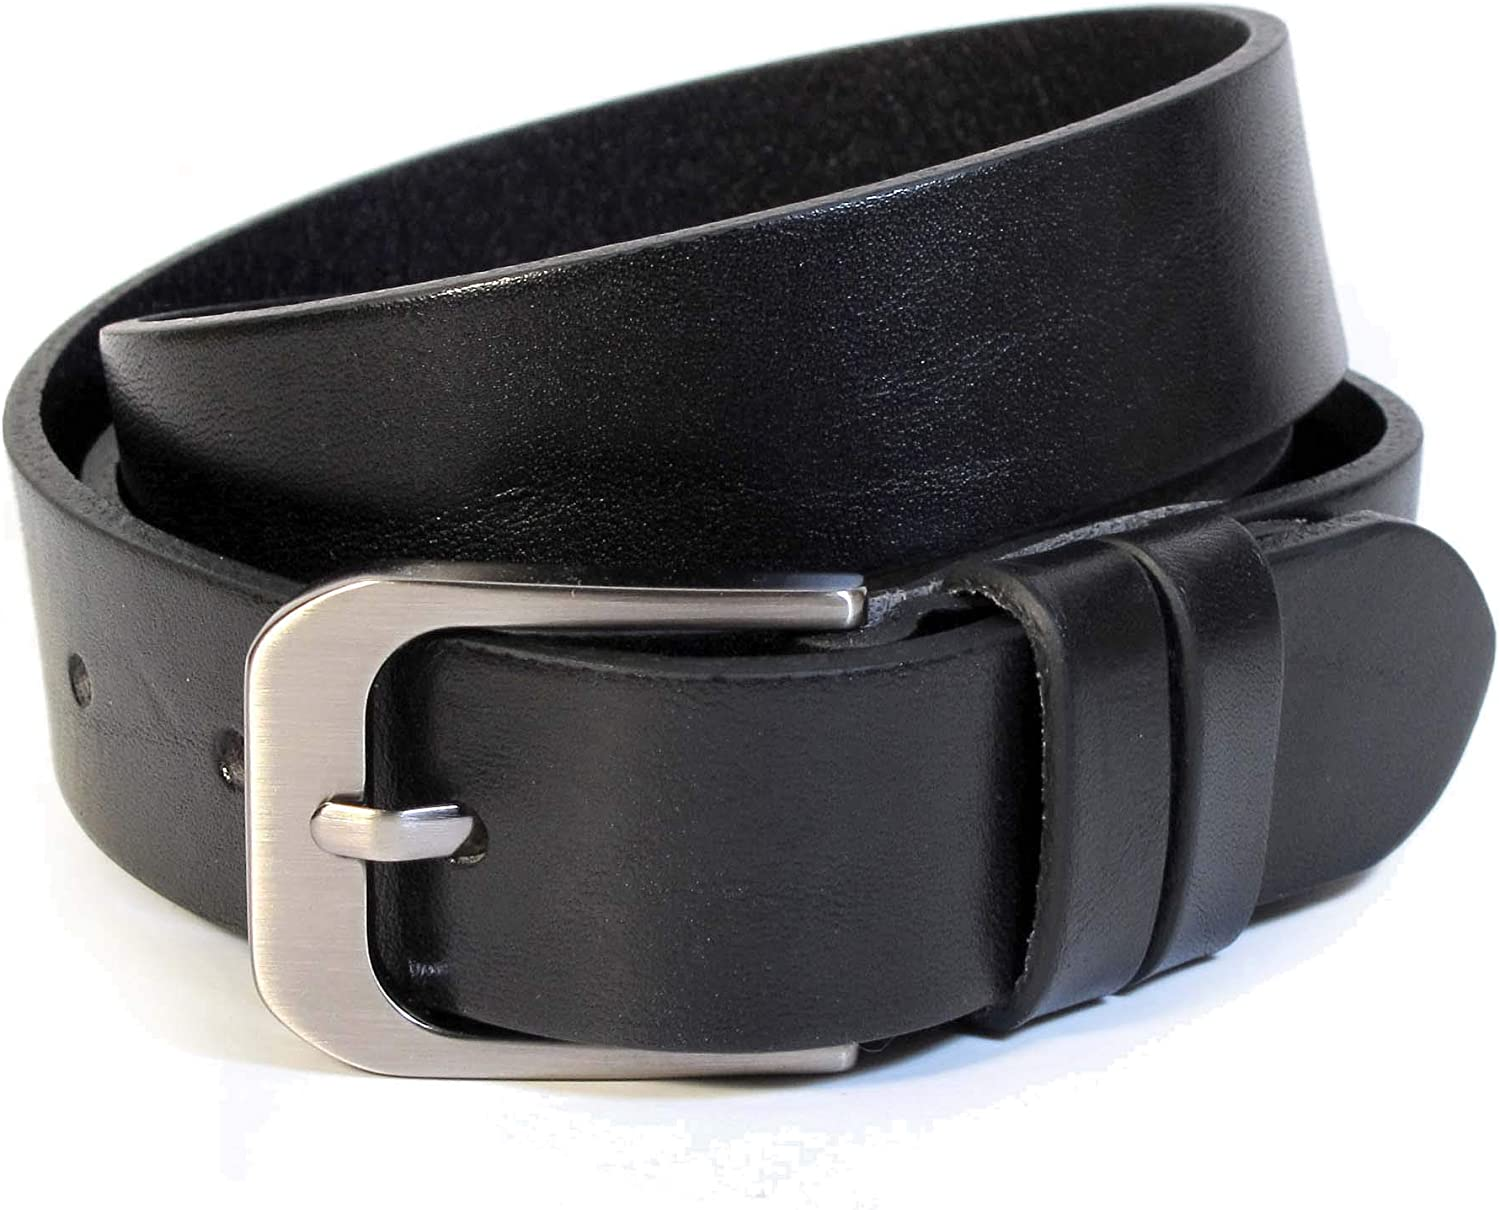 (CW1121) Womens Black Belt 100% Real Leather Size 28,30,32,34,36  Wide 1  Solid